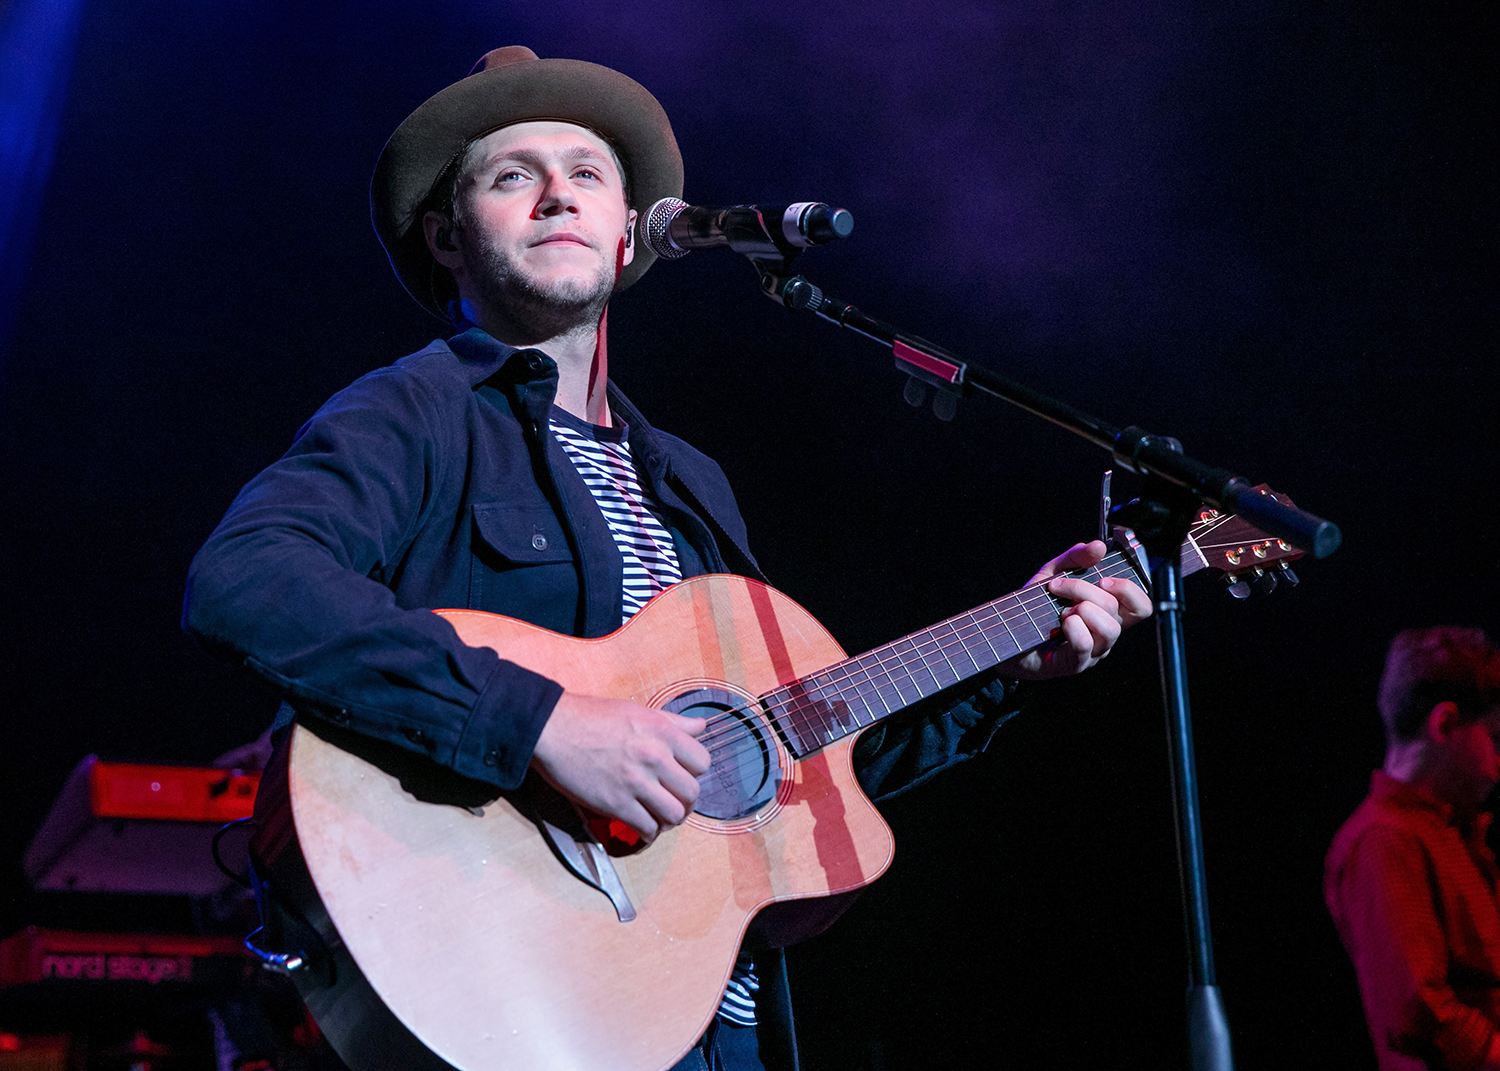 Niall Horan Plots Intimate Flicker Sessions 2017 World Tour